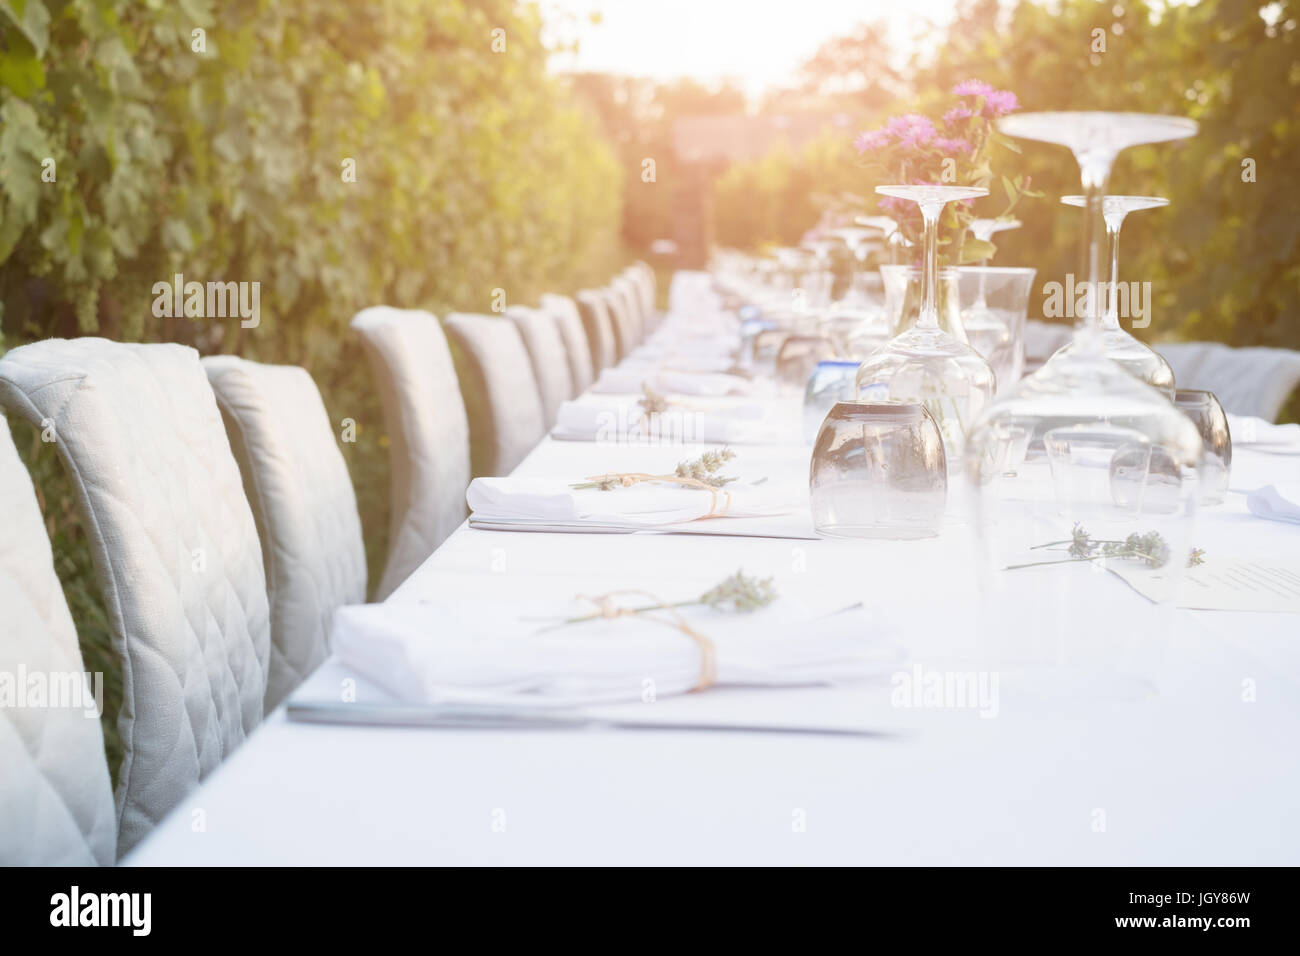 Partie table set for social événement dans la campagne Photo Stock